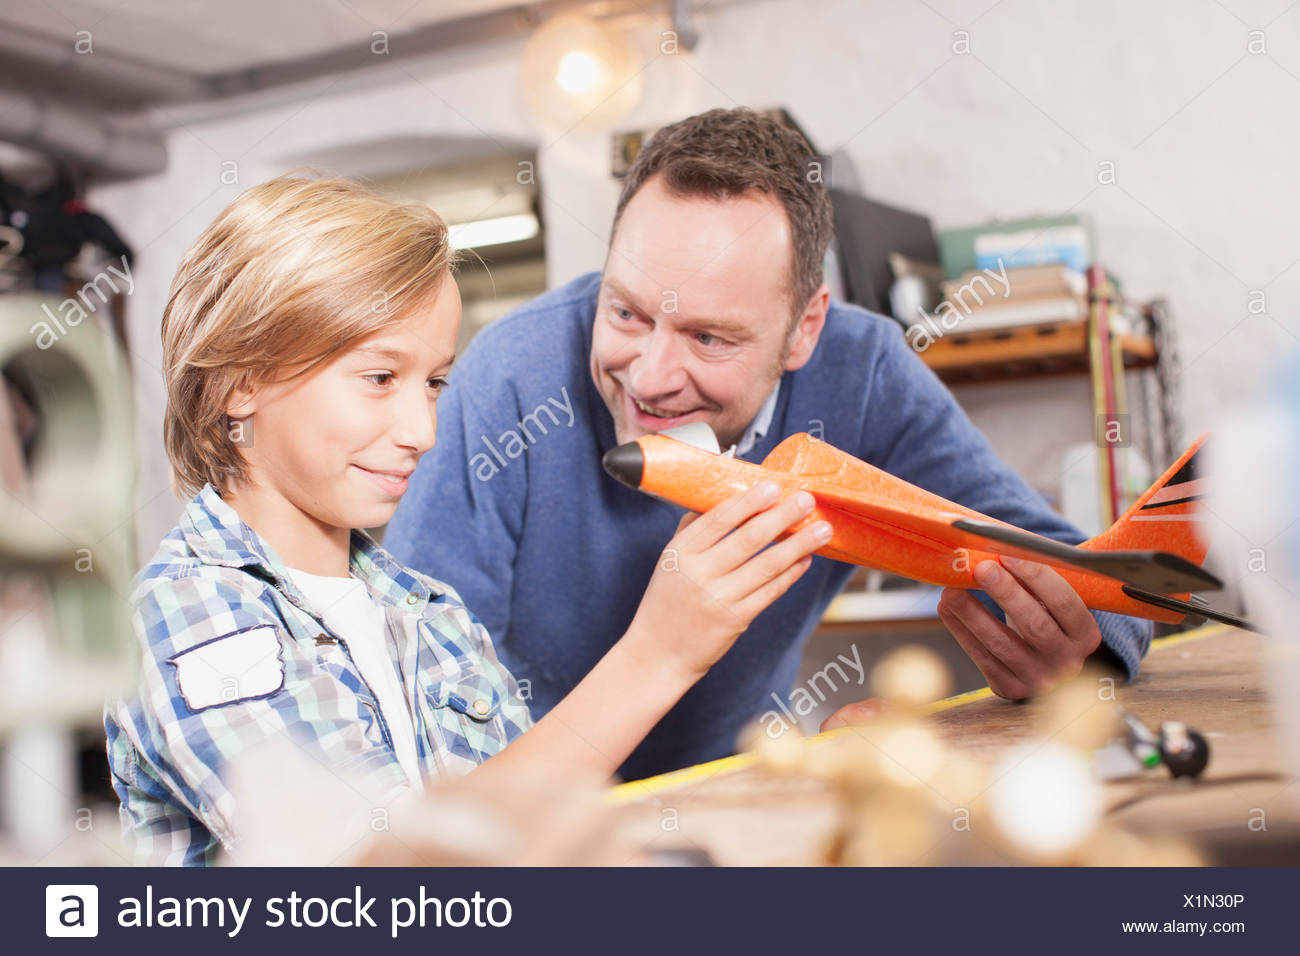 Germany, Leipzig, Father and son repairing aircraft - Stock Image